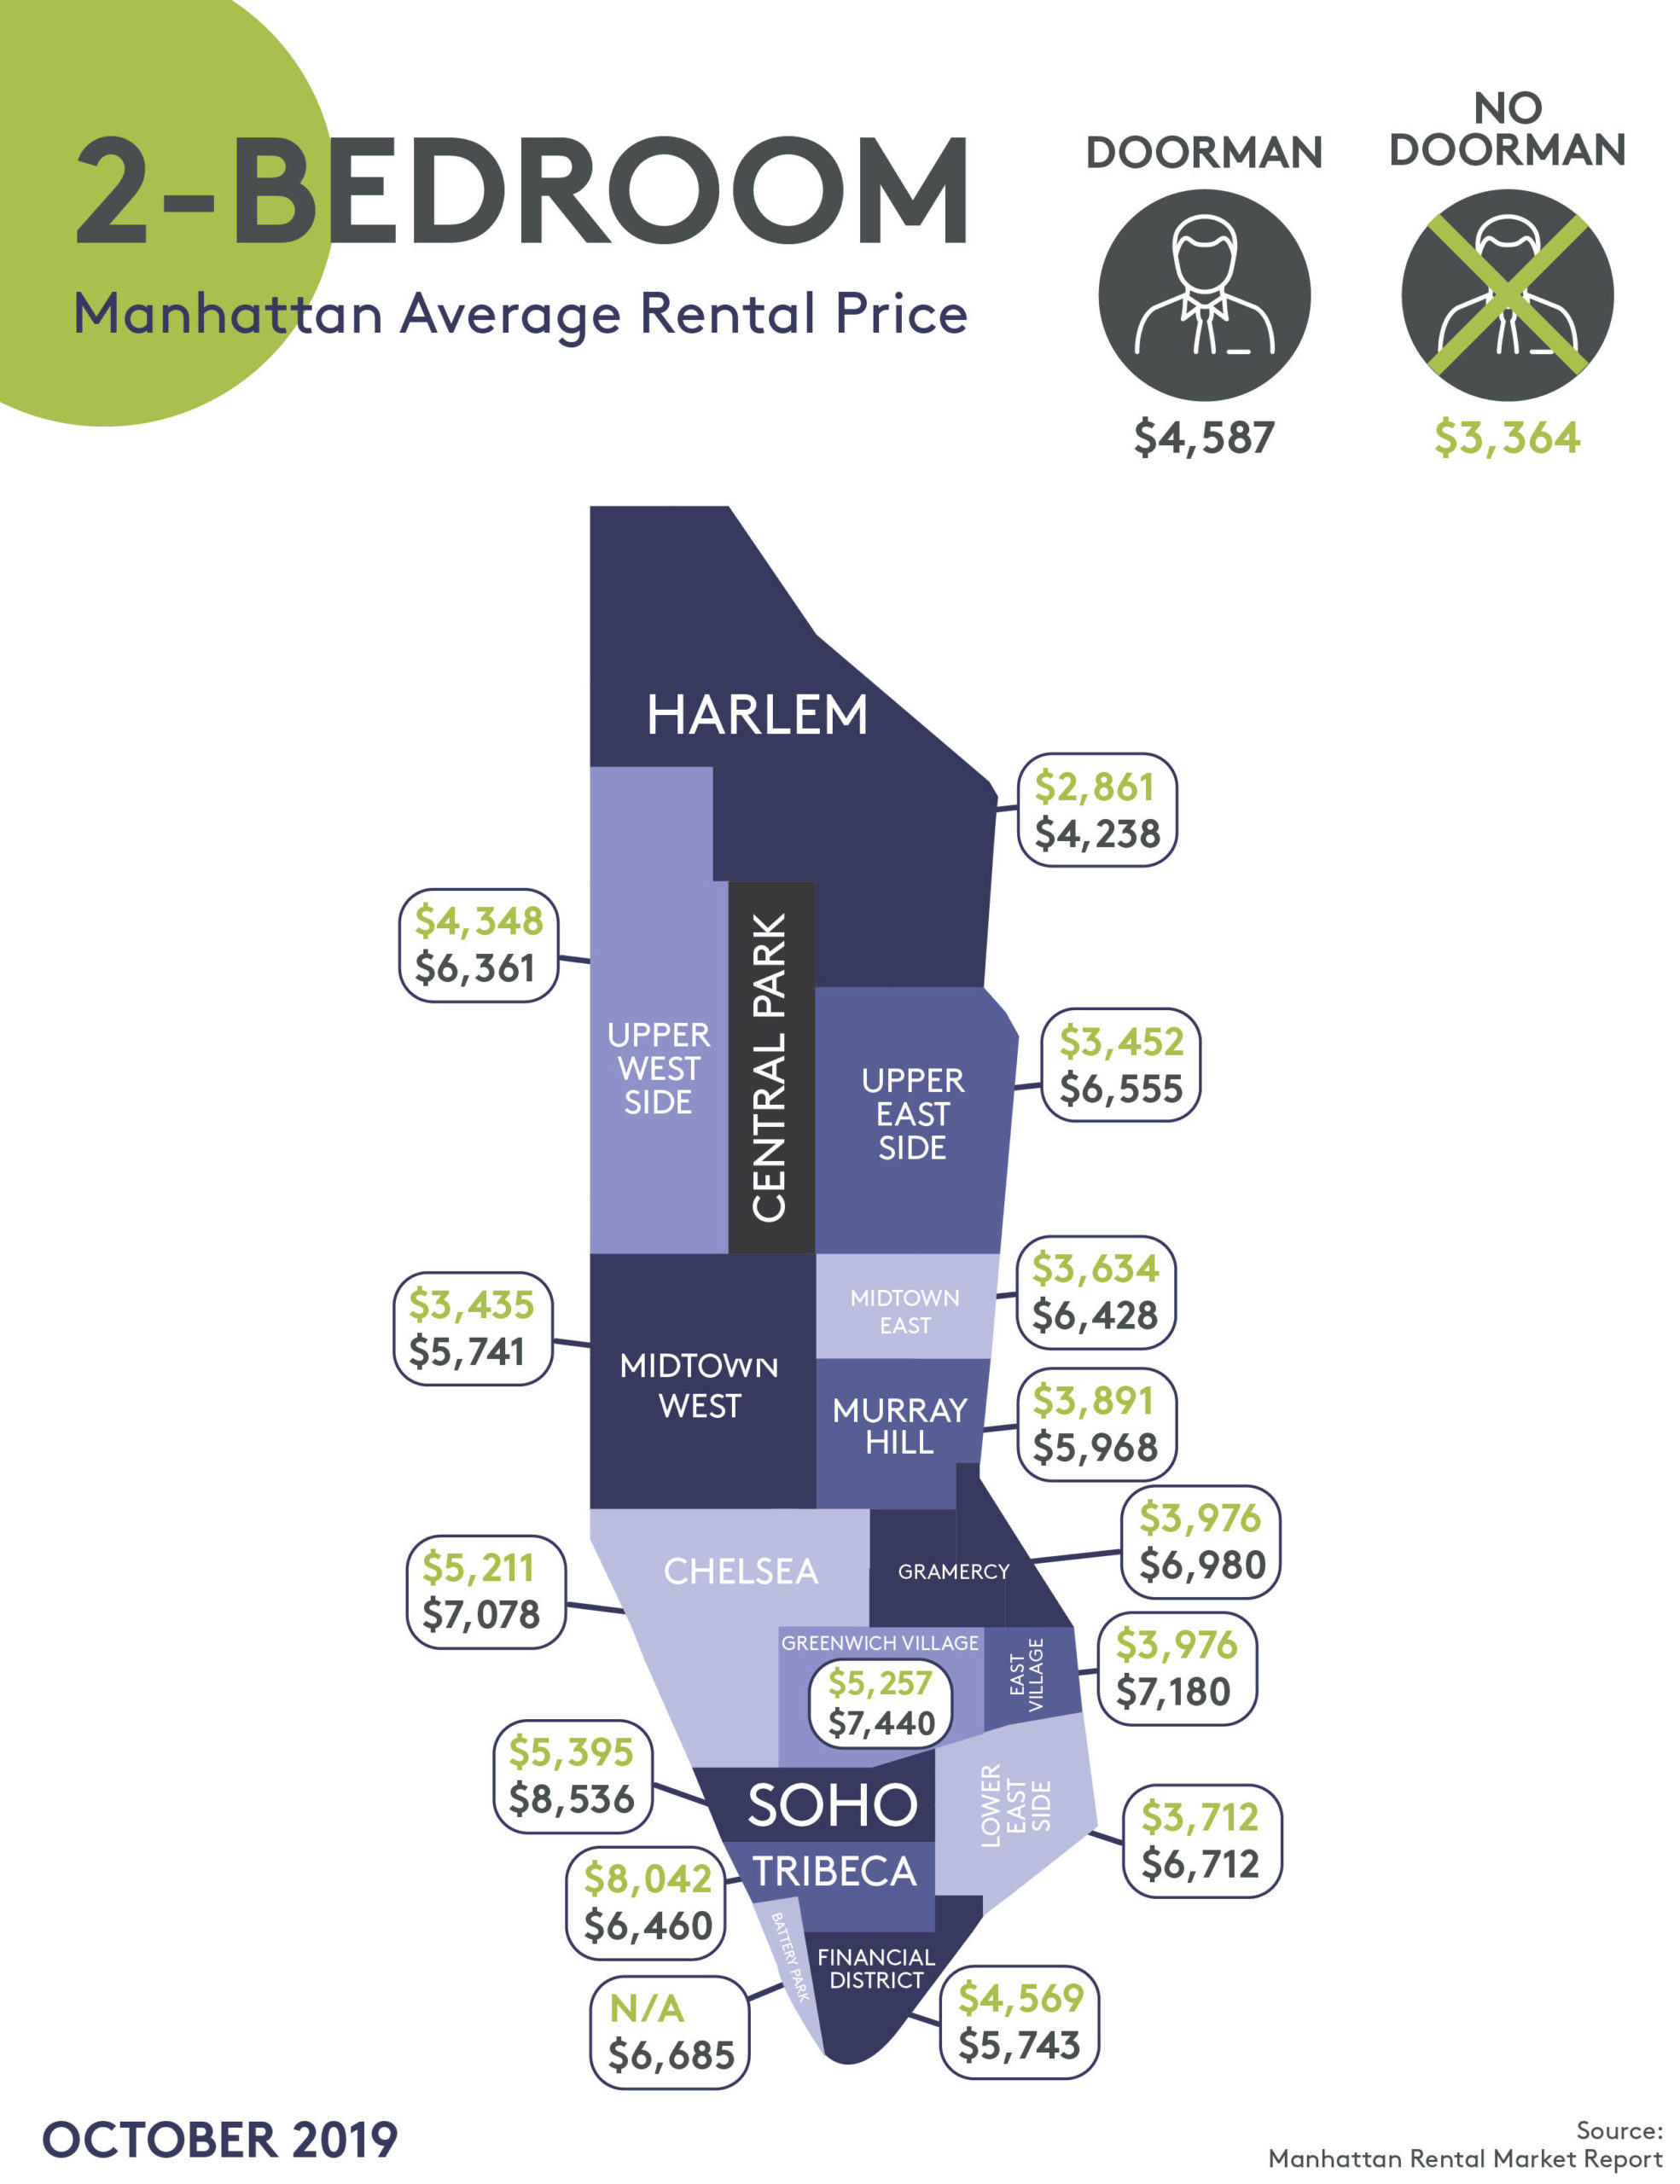 prices for 2-bedroom apartments in Manhattan